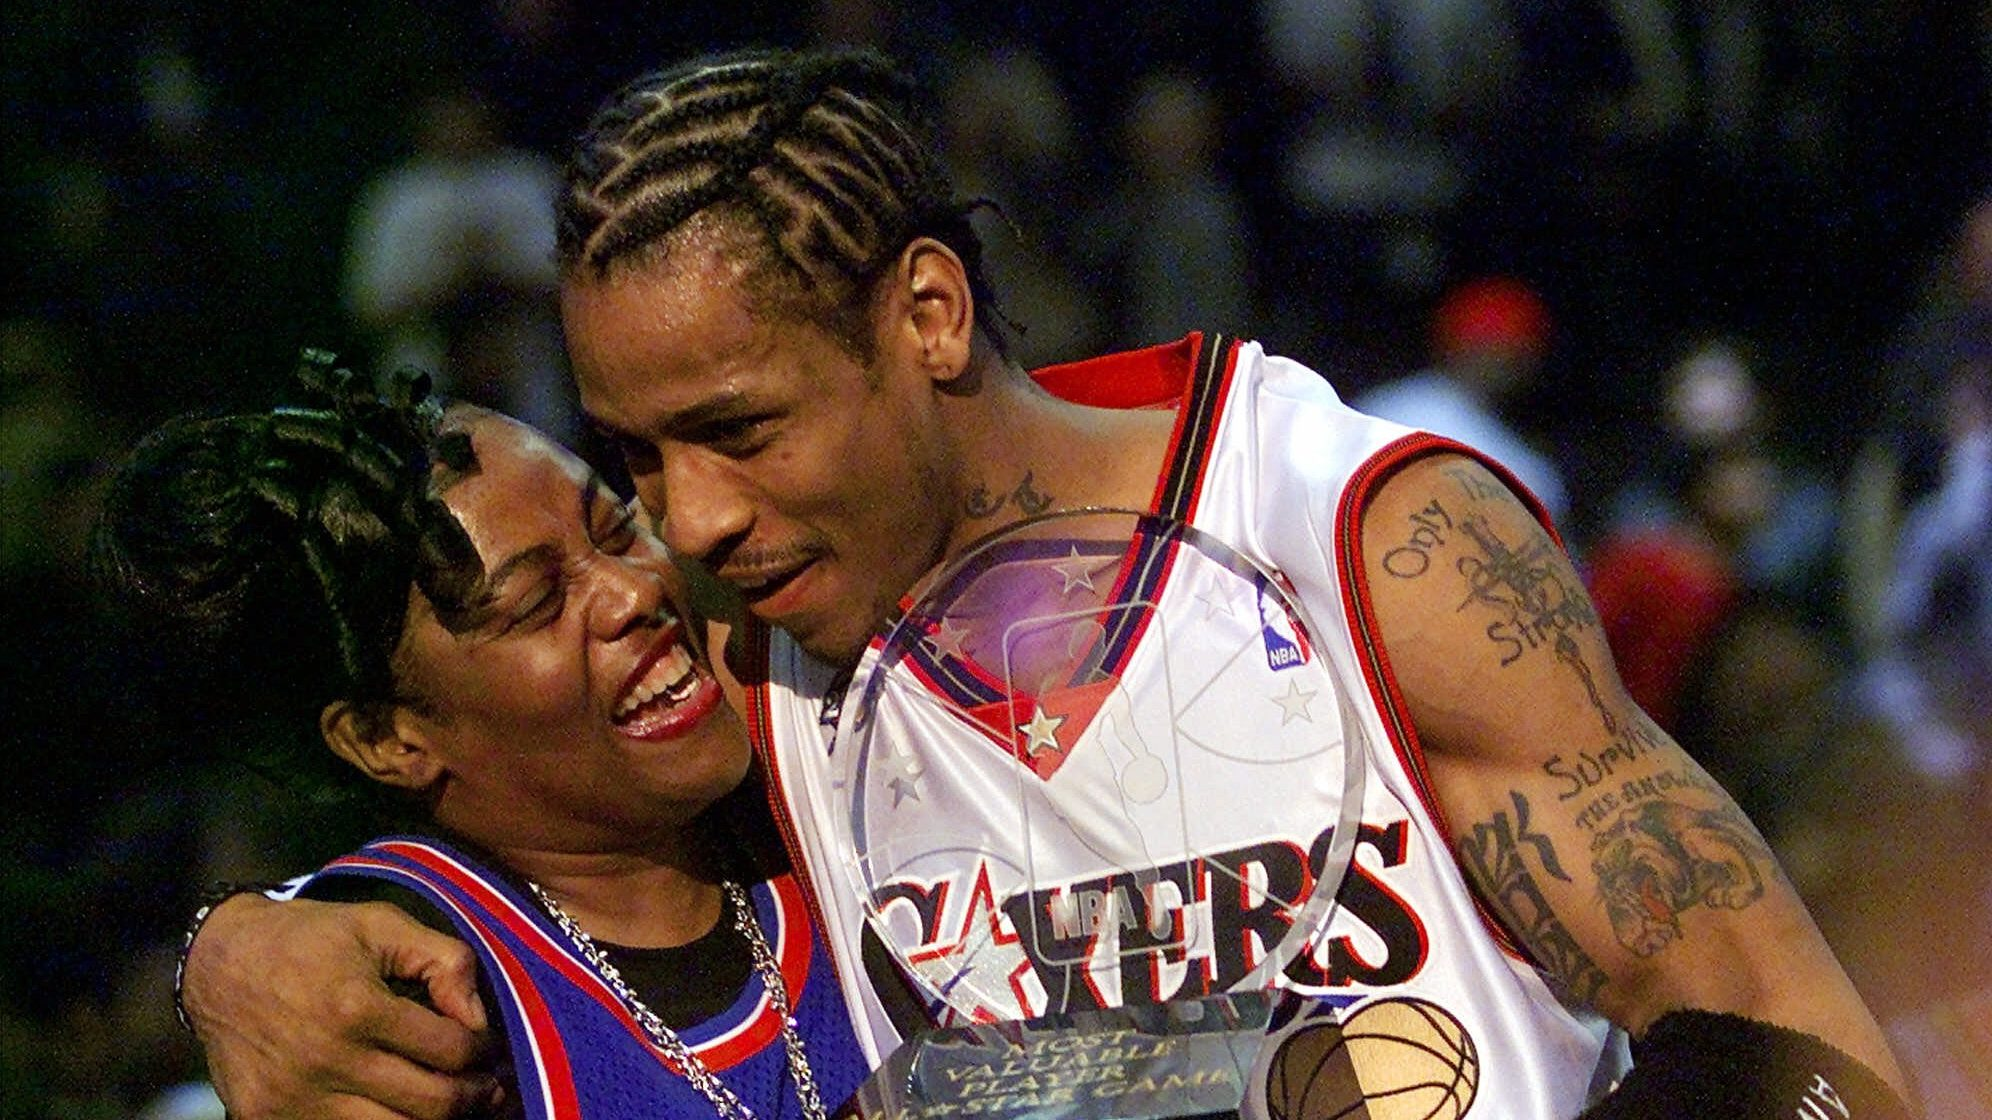 Being Ann Iverson I knew Allen Iverson was going to the